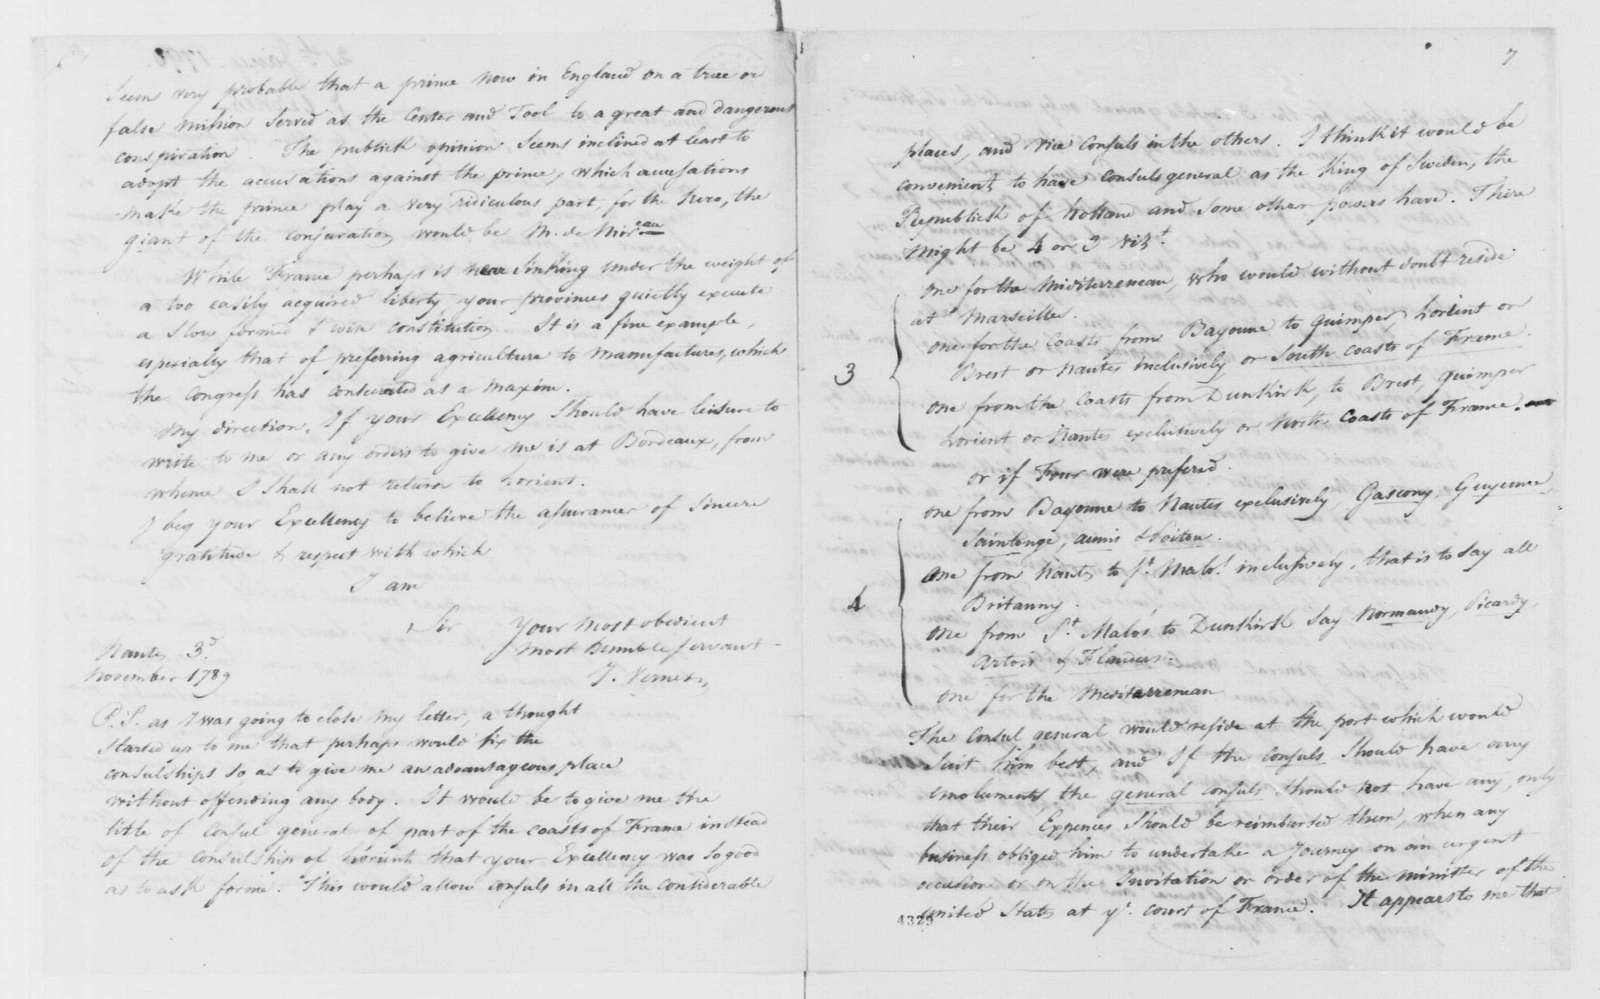 George Washington Papers, Series 7, Applications for Office, 1789-1796: J. Vernes